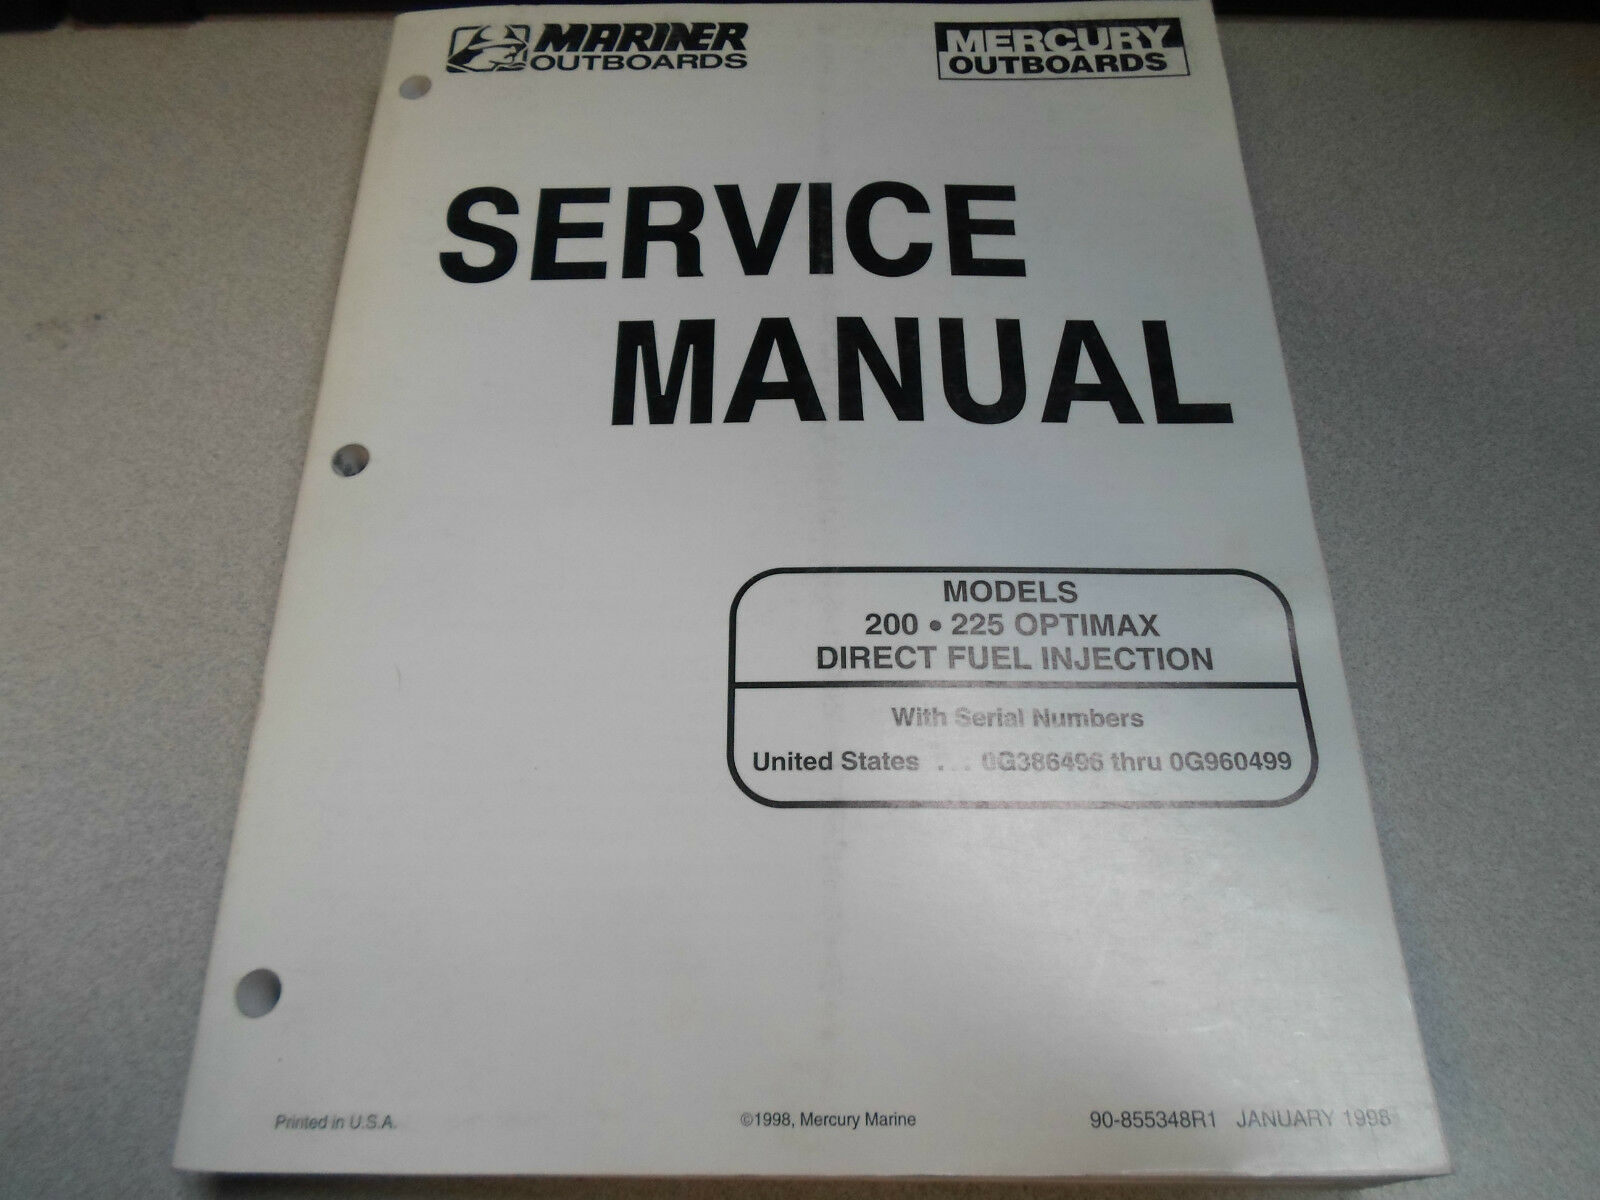 1 of 12Only 2 available Mercury Mariner Outboards Service Manual 200 225  Optimax DFI 90-855348R1 OEM x